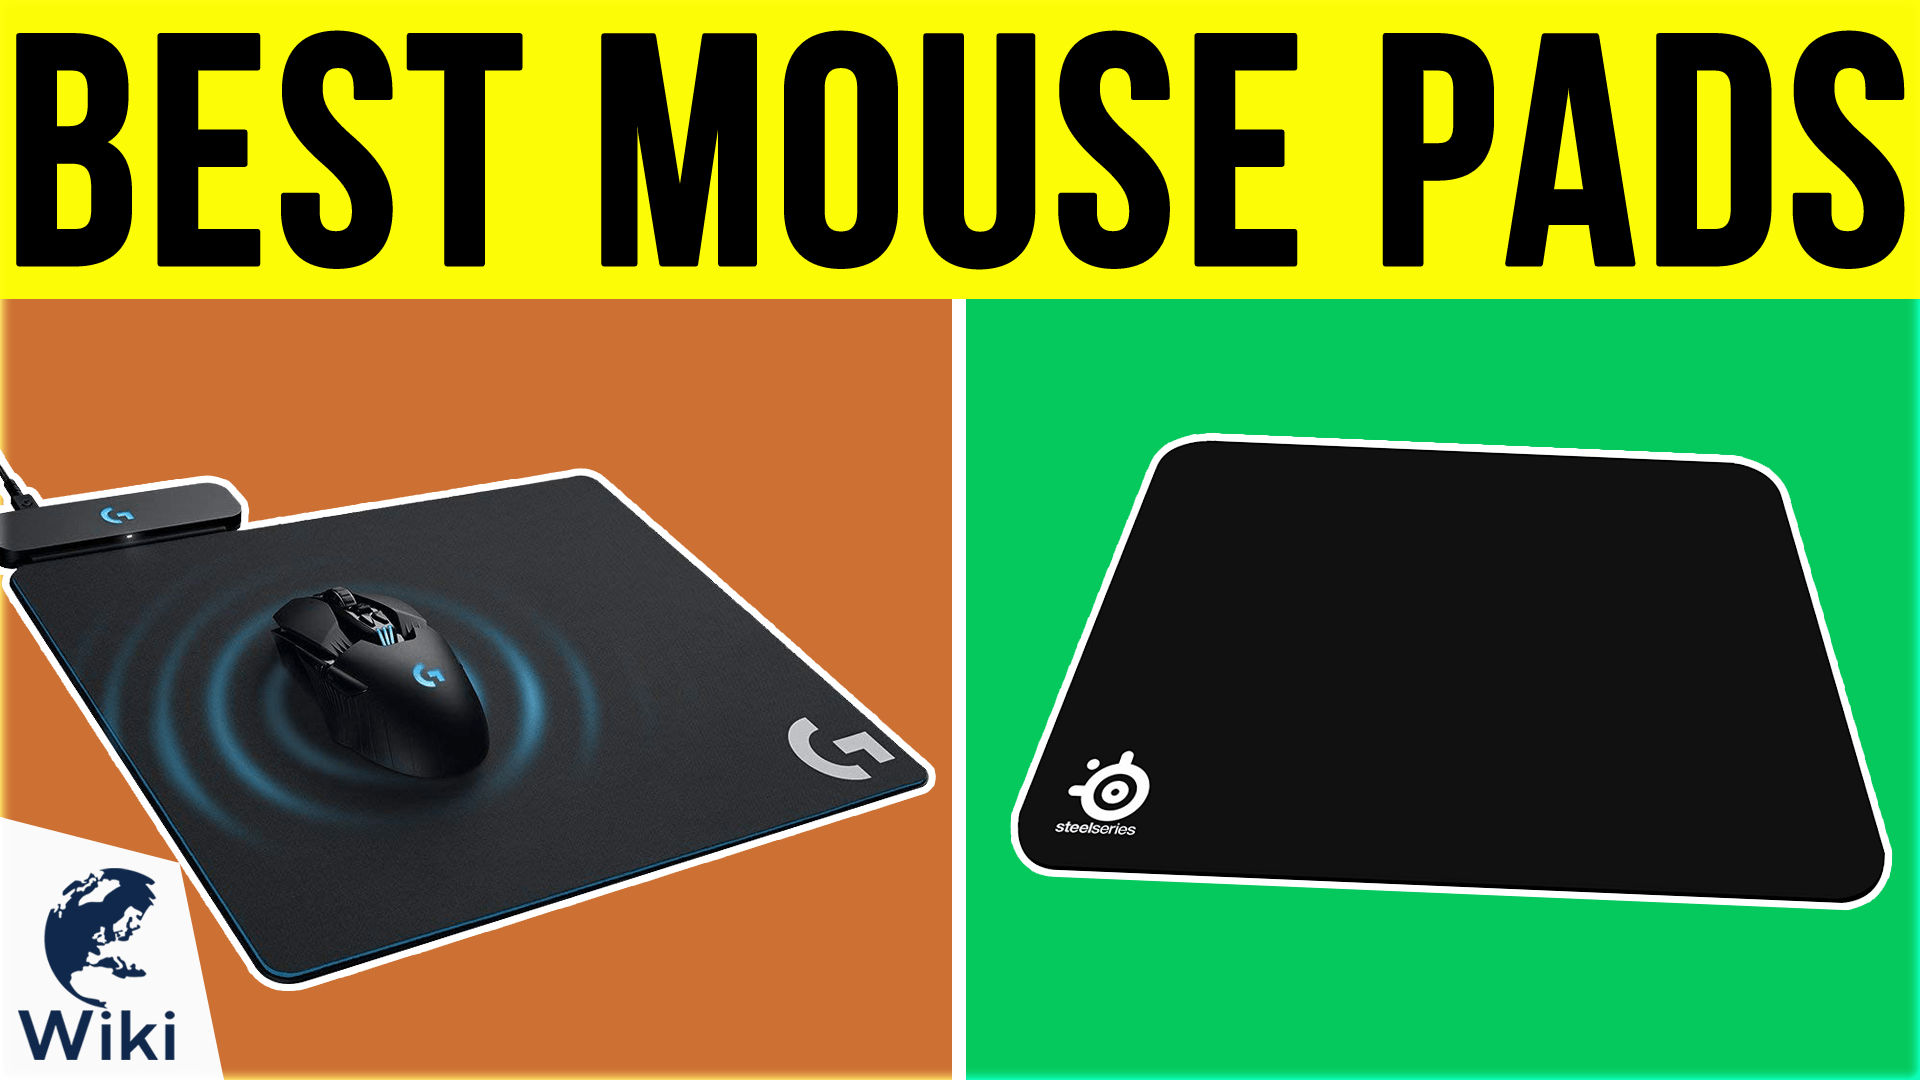 The 10 Best Mouse Pads